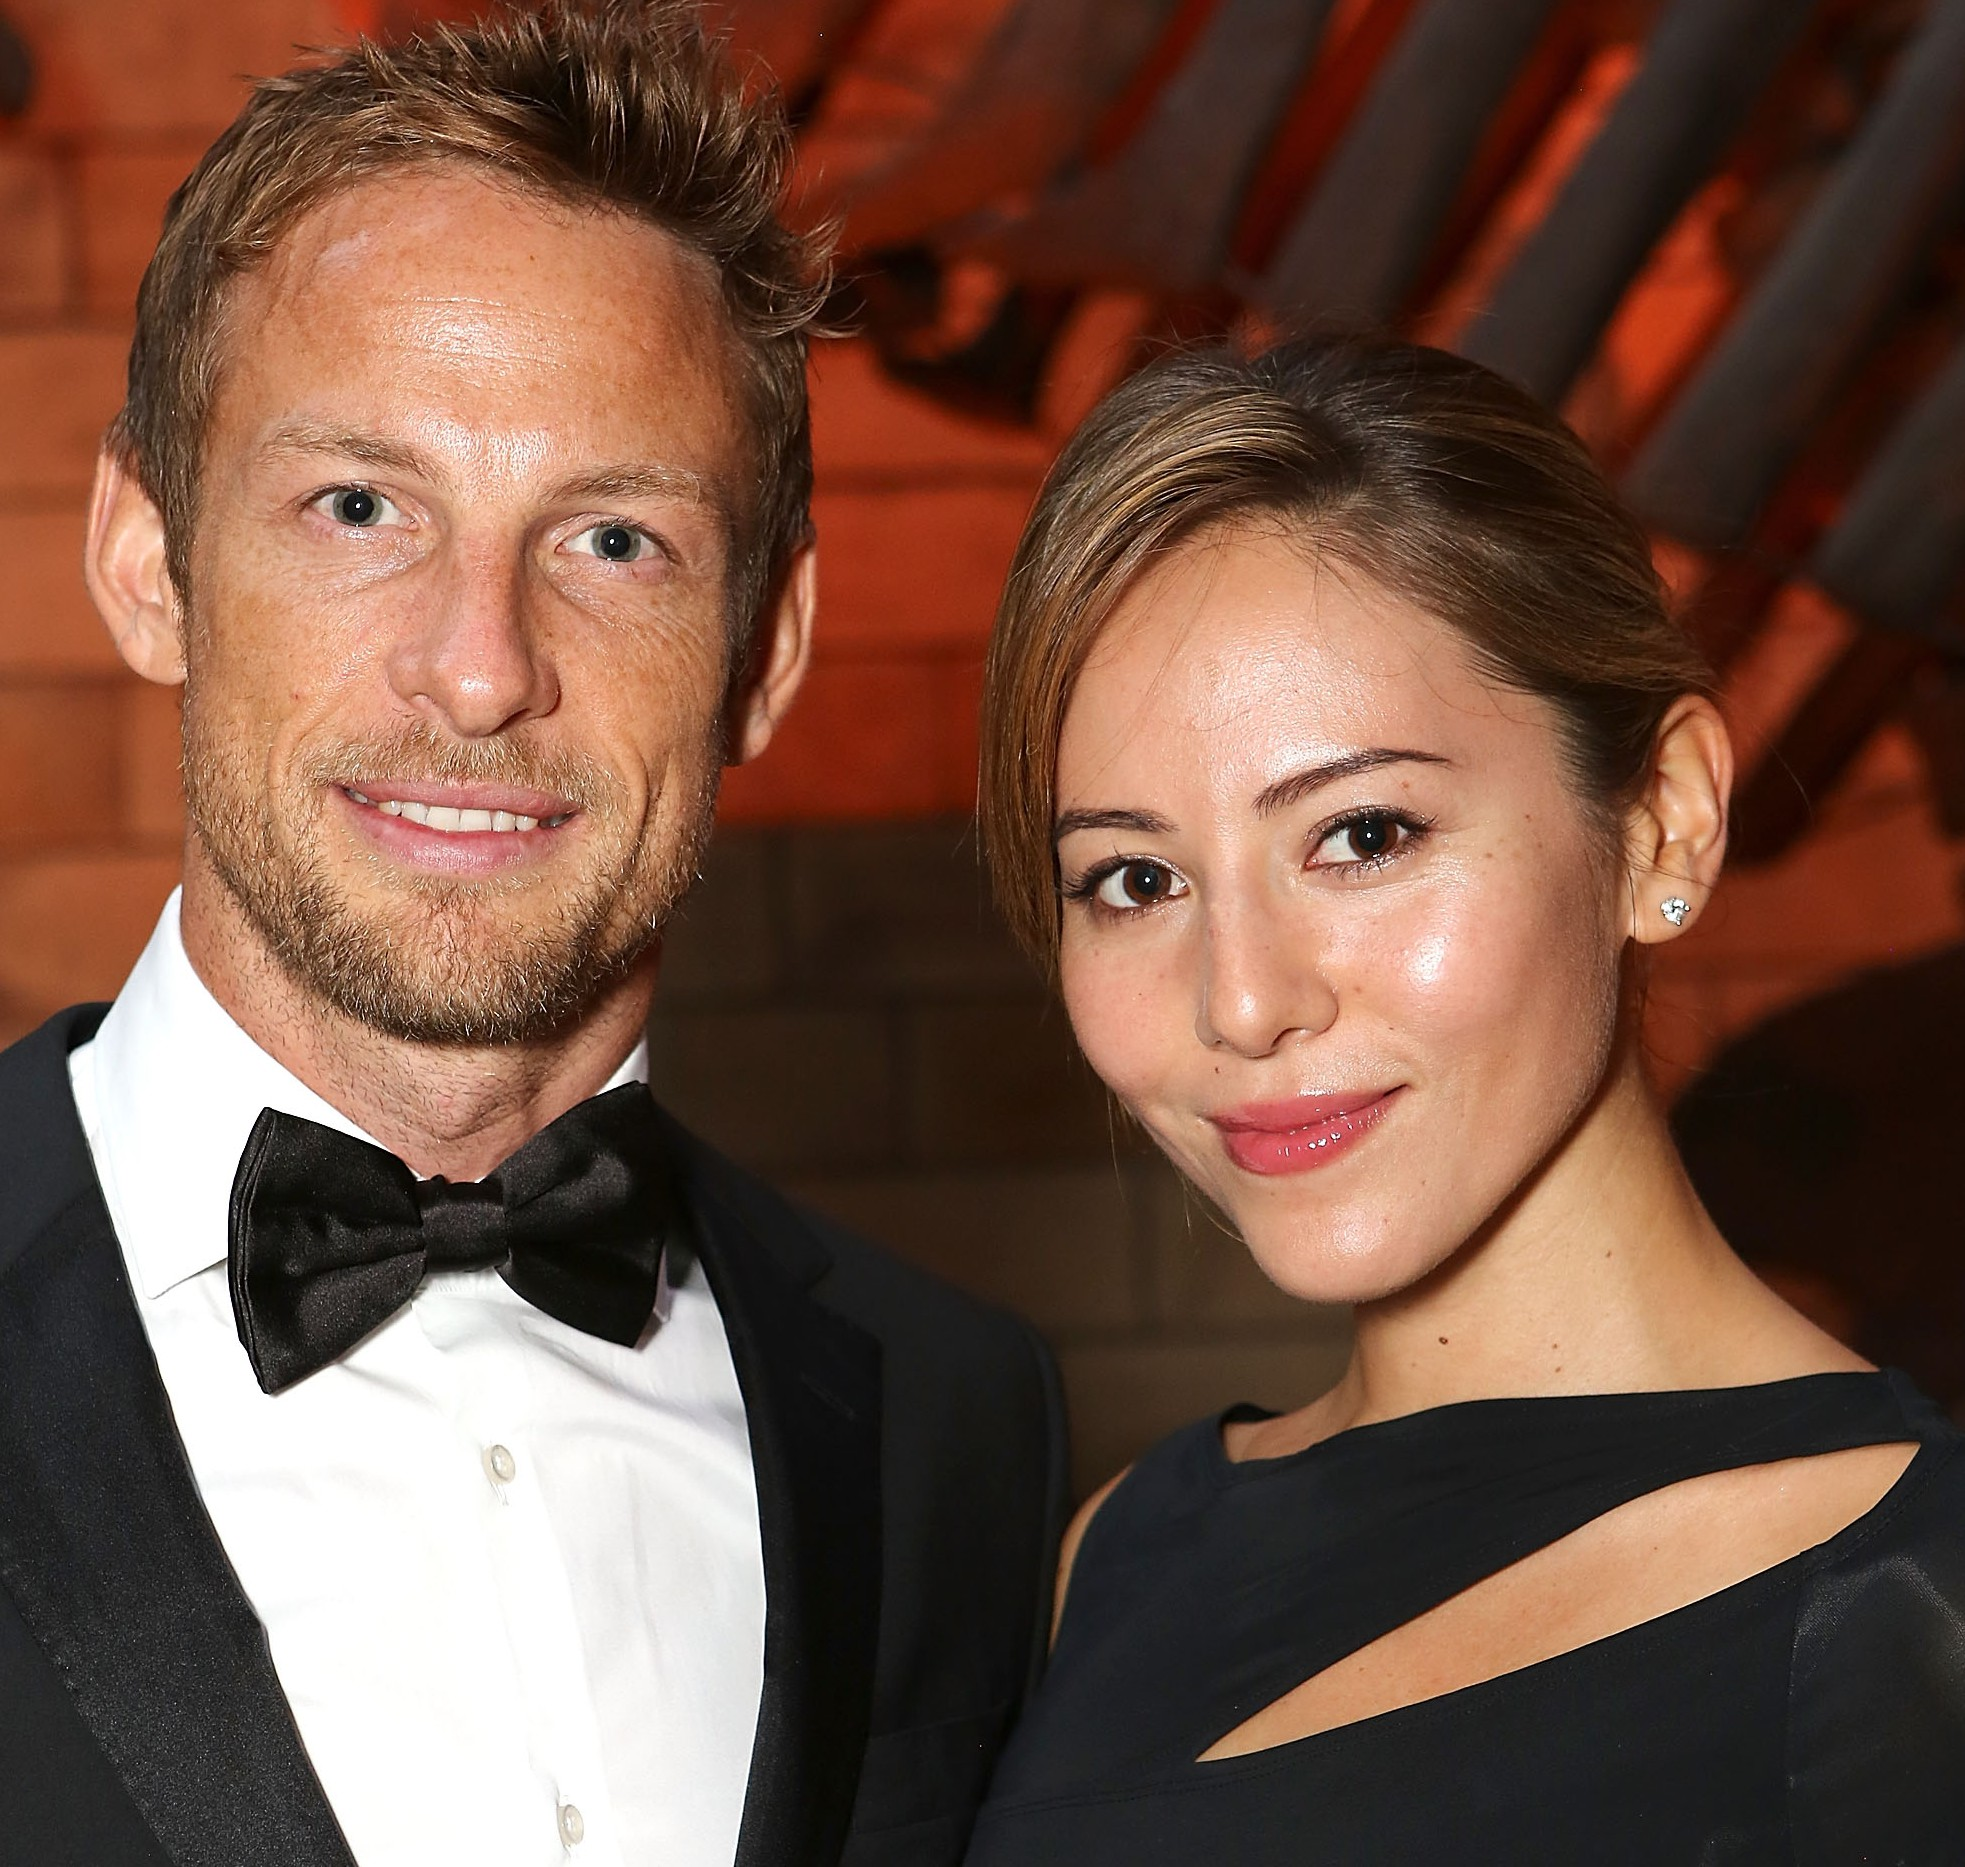 Jenson Button and his wife Jessica Michibata to separate after a year of marriage